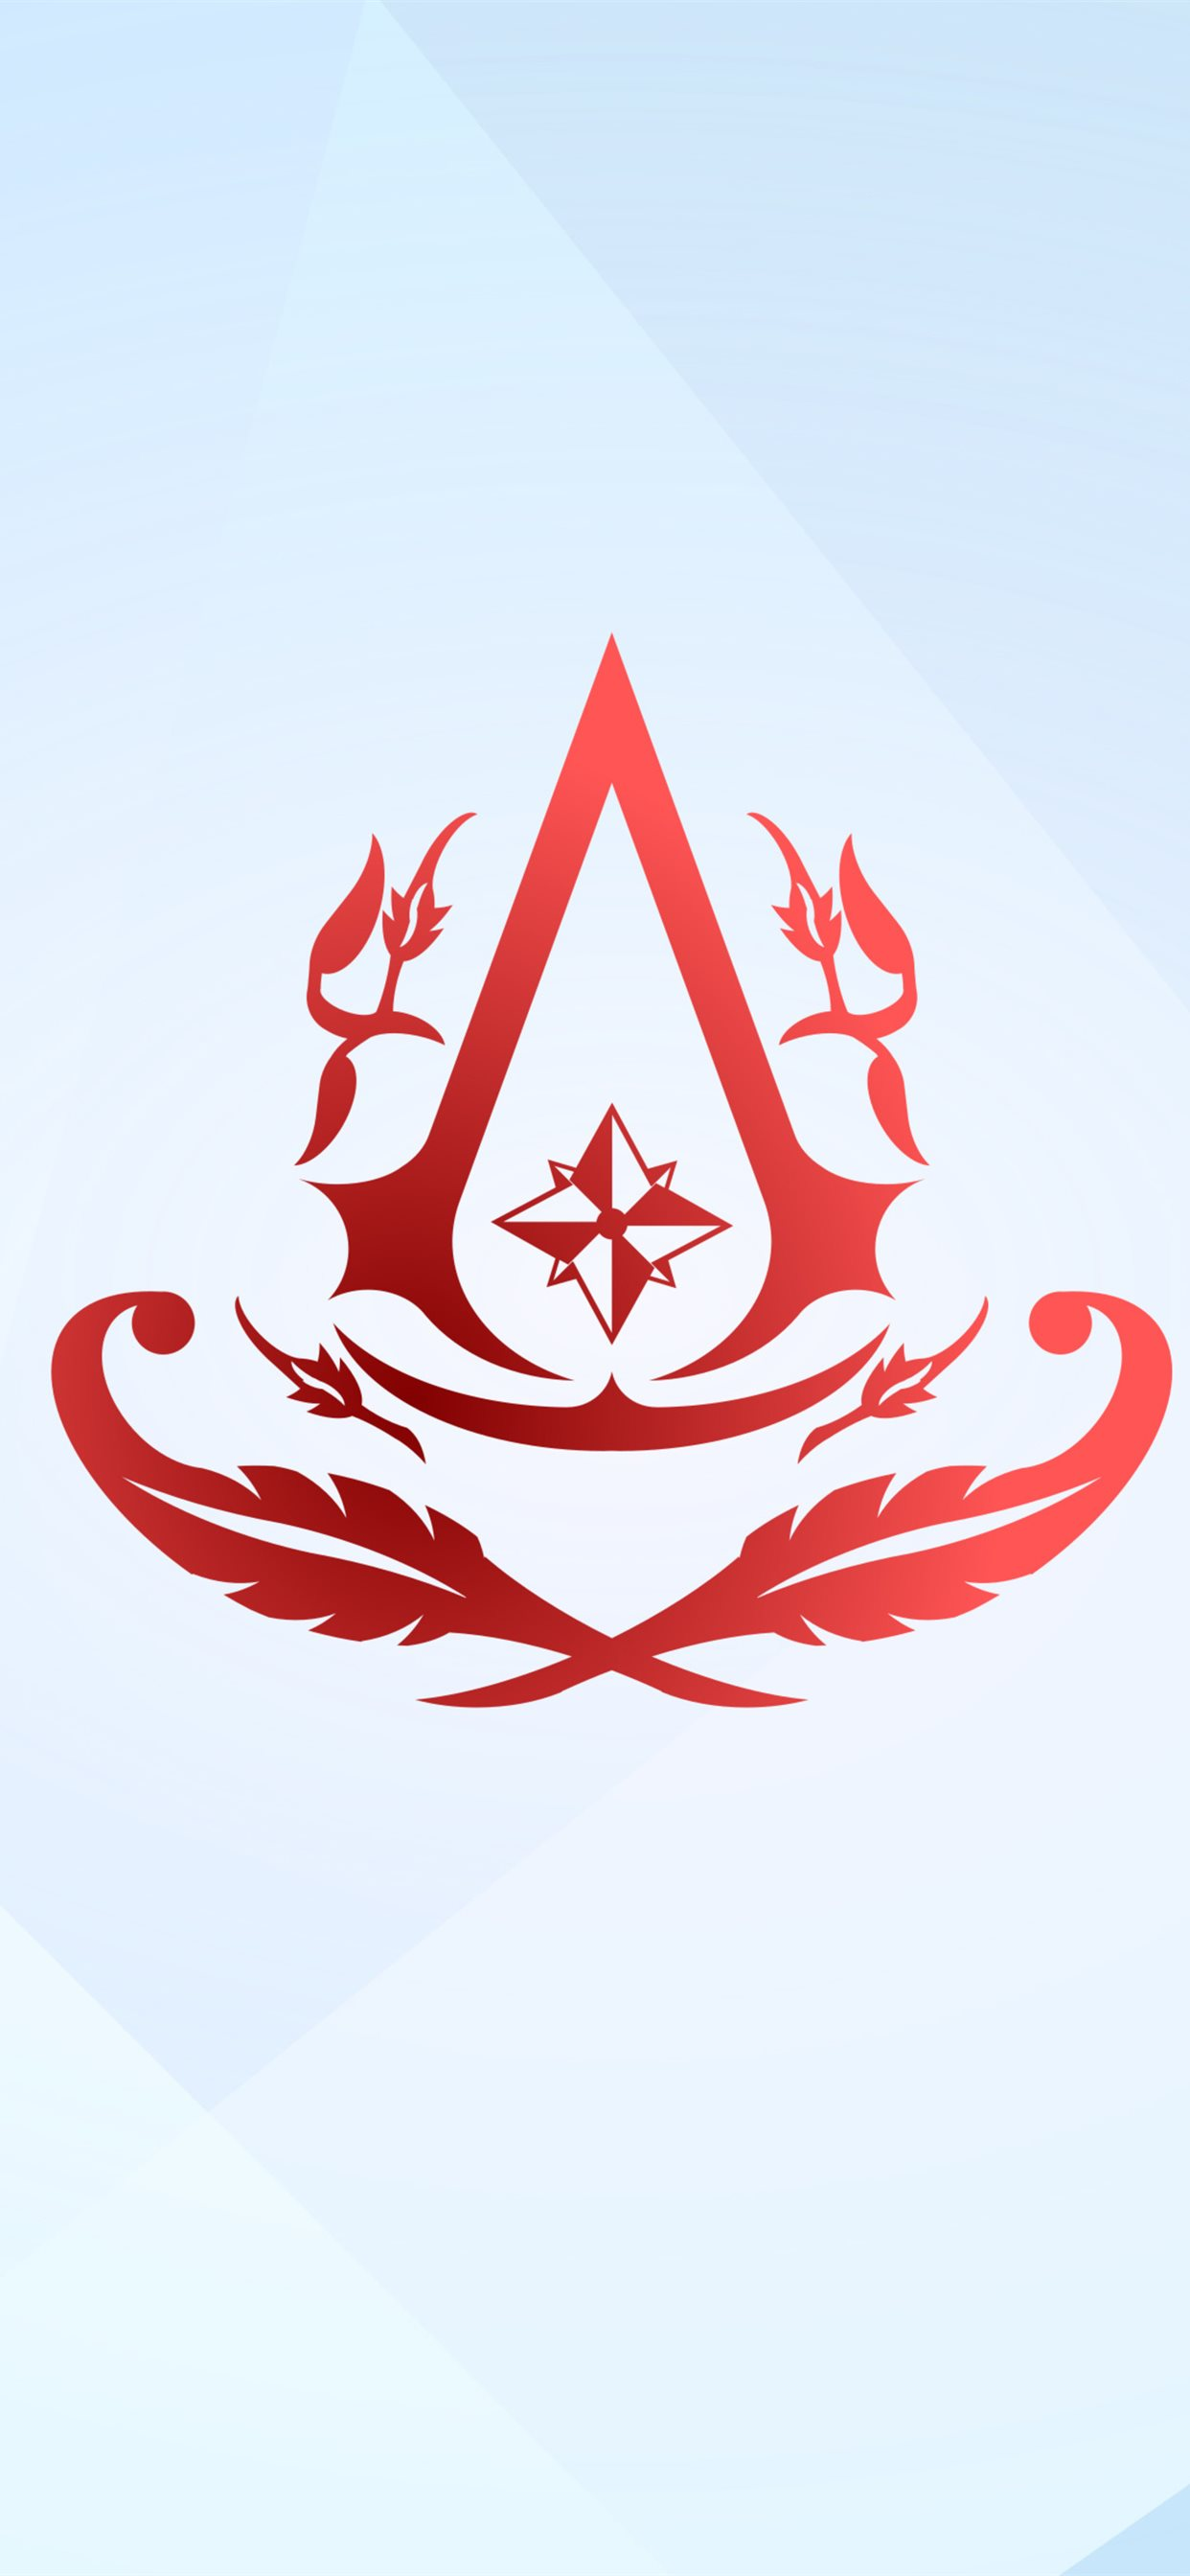 Assassins Creed 4k Minimal Logo 2020 Iphone X Wallpapers Free Download